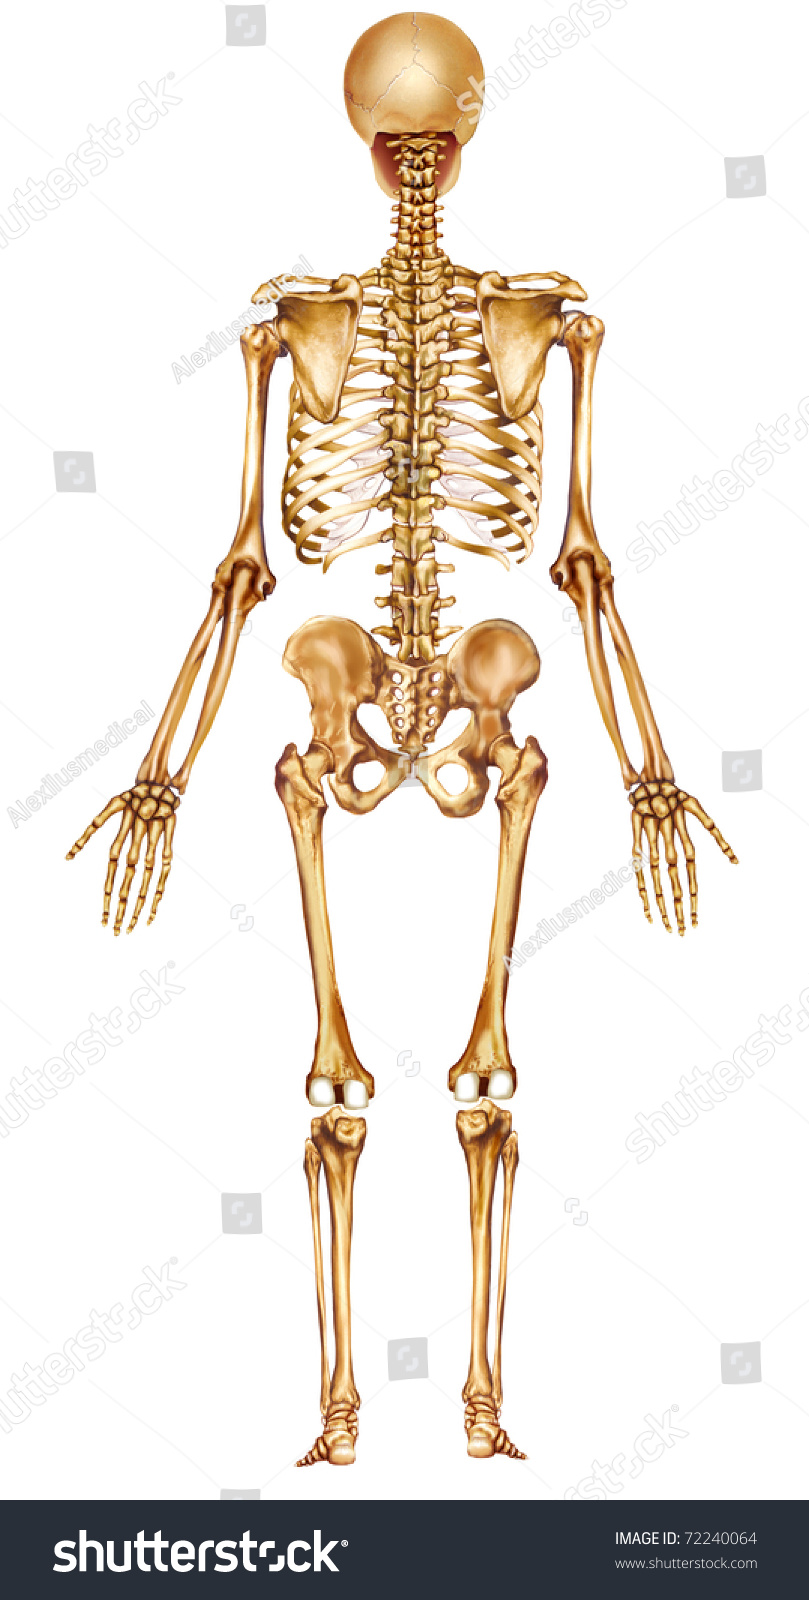 rear view human skeleton stock illustration 72240064 - shutterstock, Skeleton